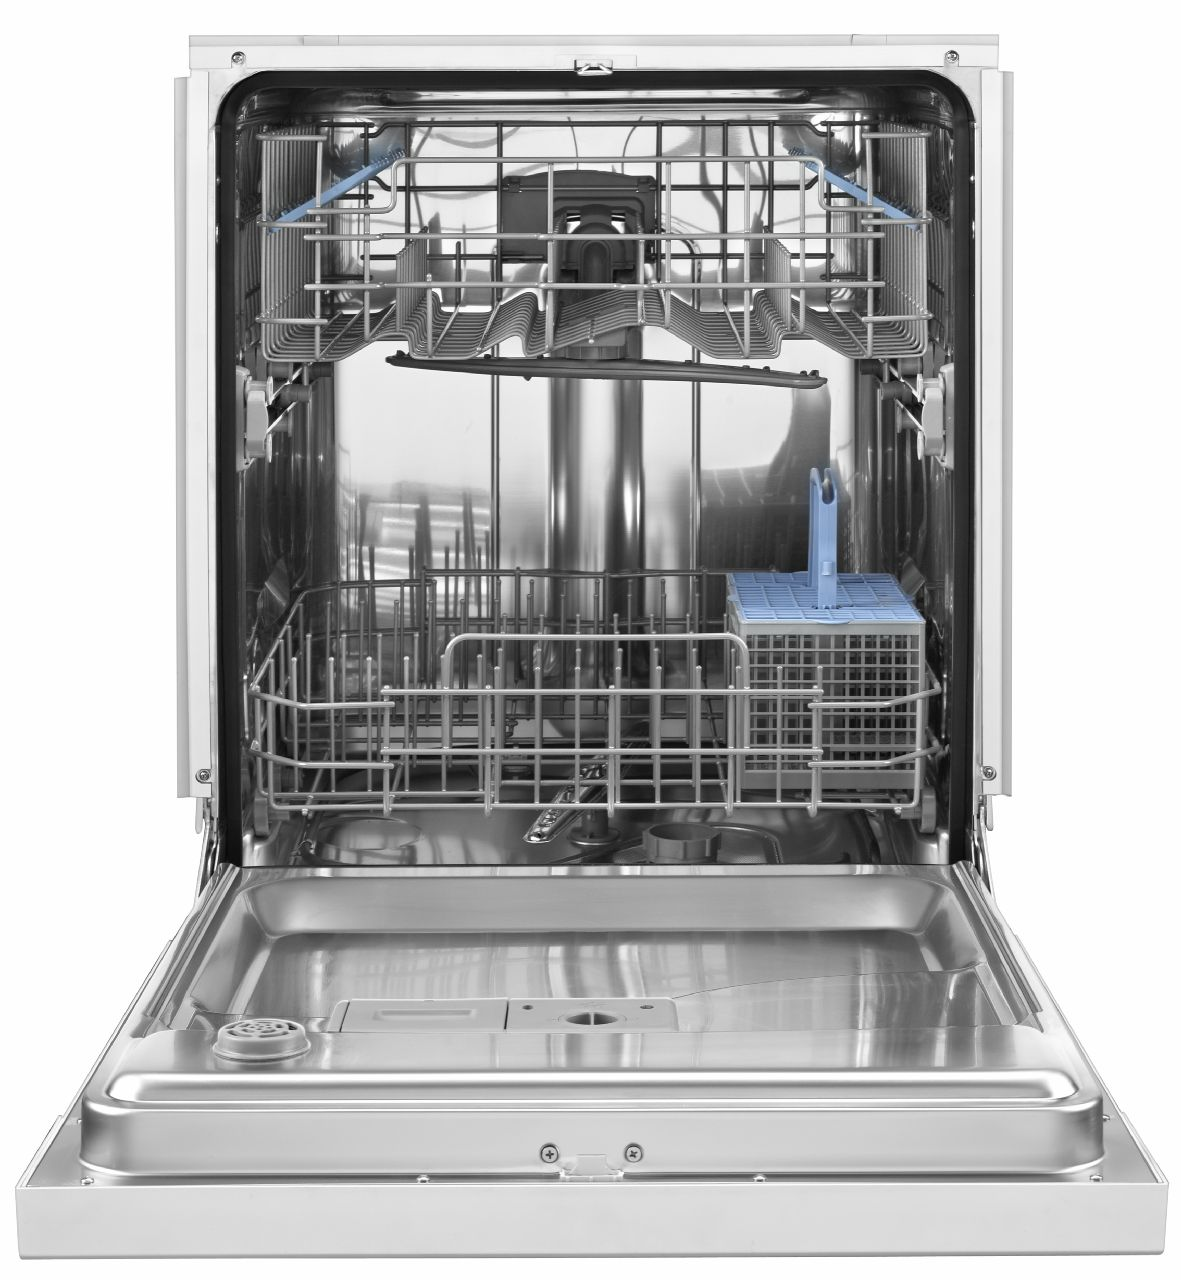 """Featured image for """"How to Replace the Door Panel on a Dishwasher"""""""